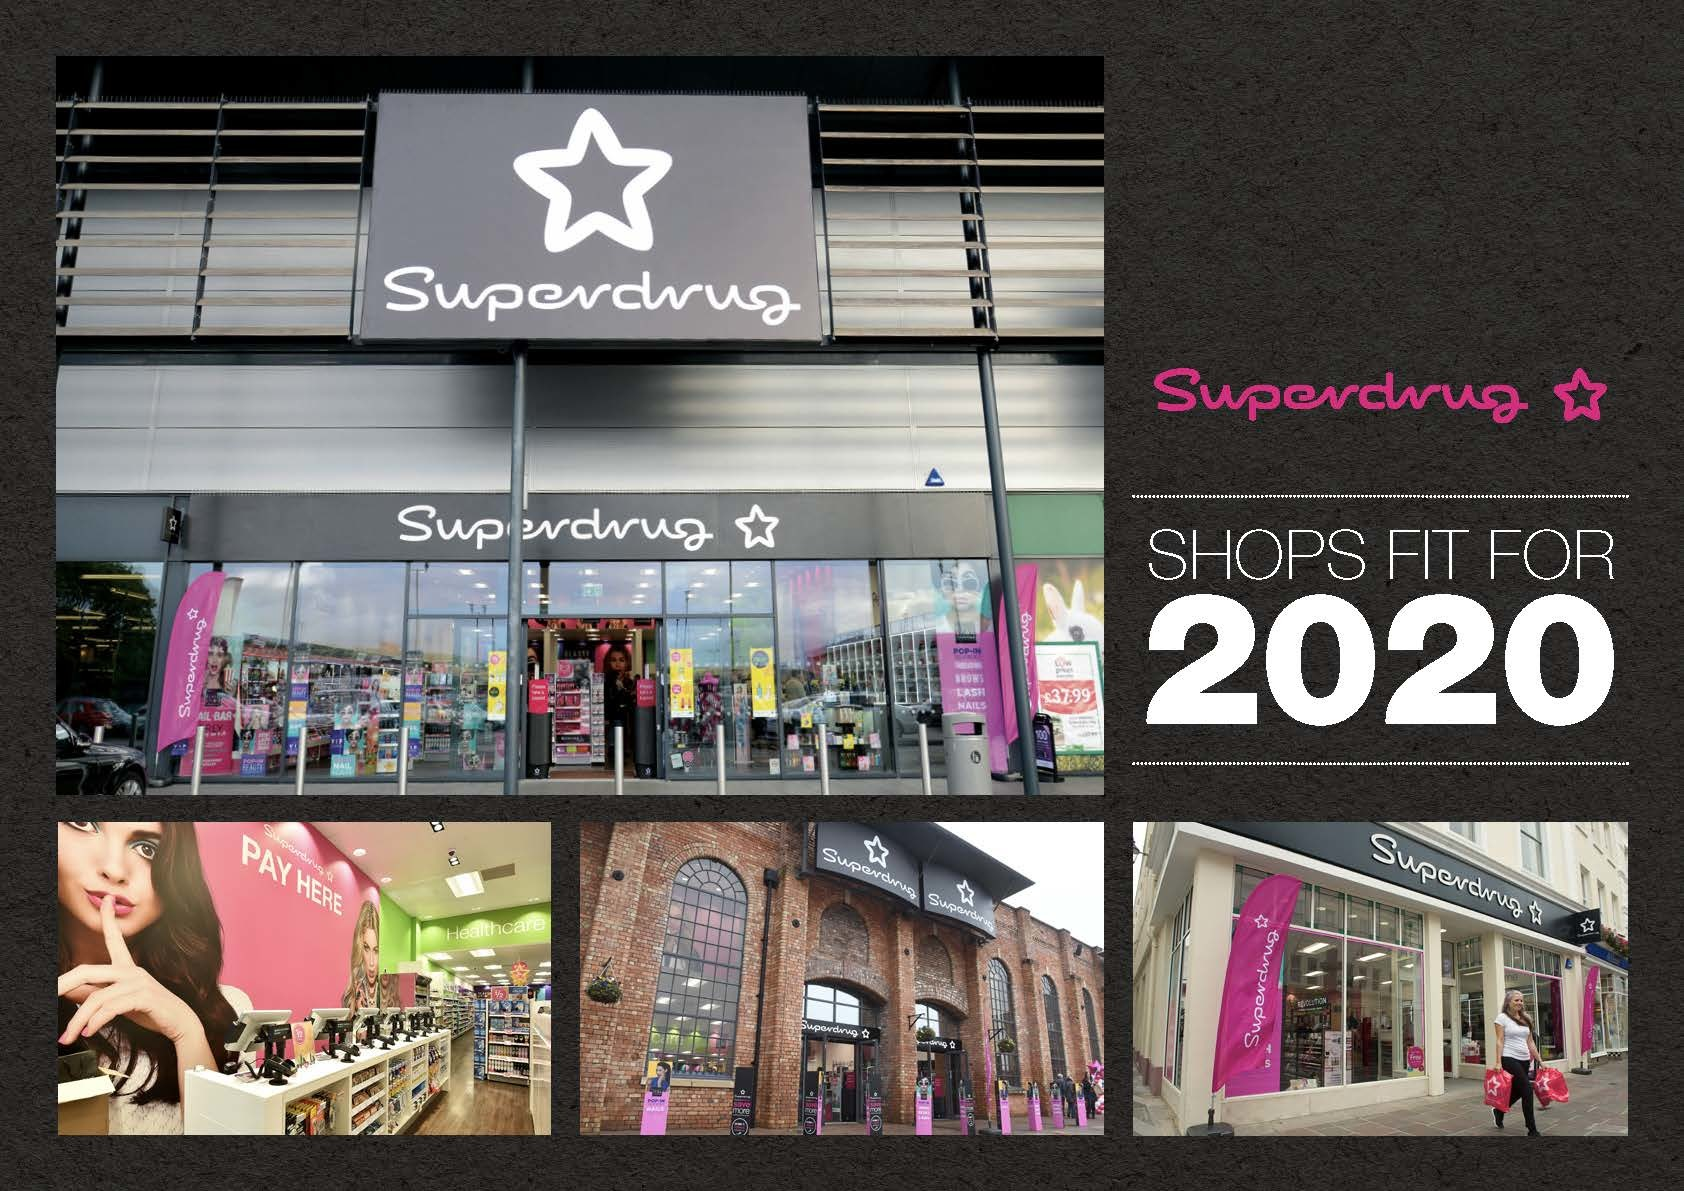 Superdrug-Requirement-Flyer-final_Page_1.jpg#asset:82399